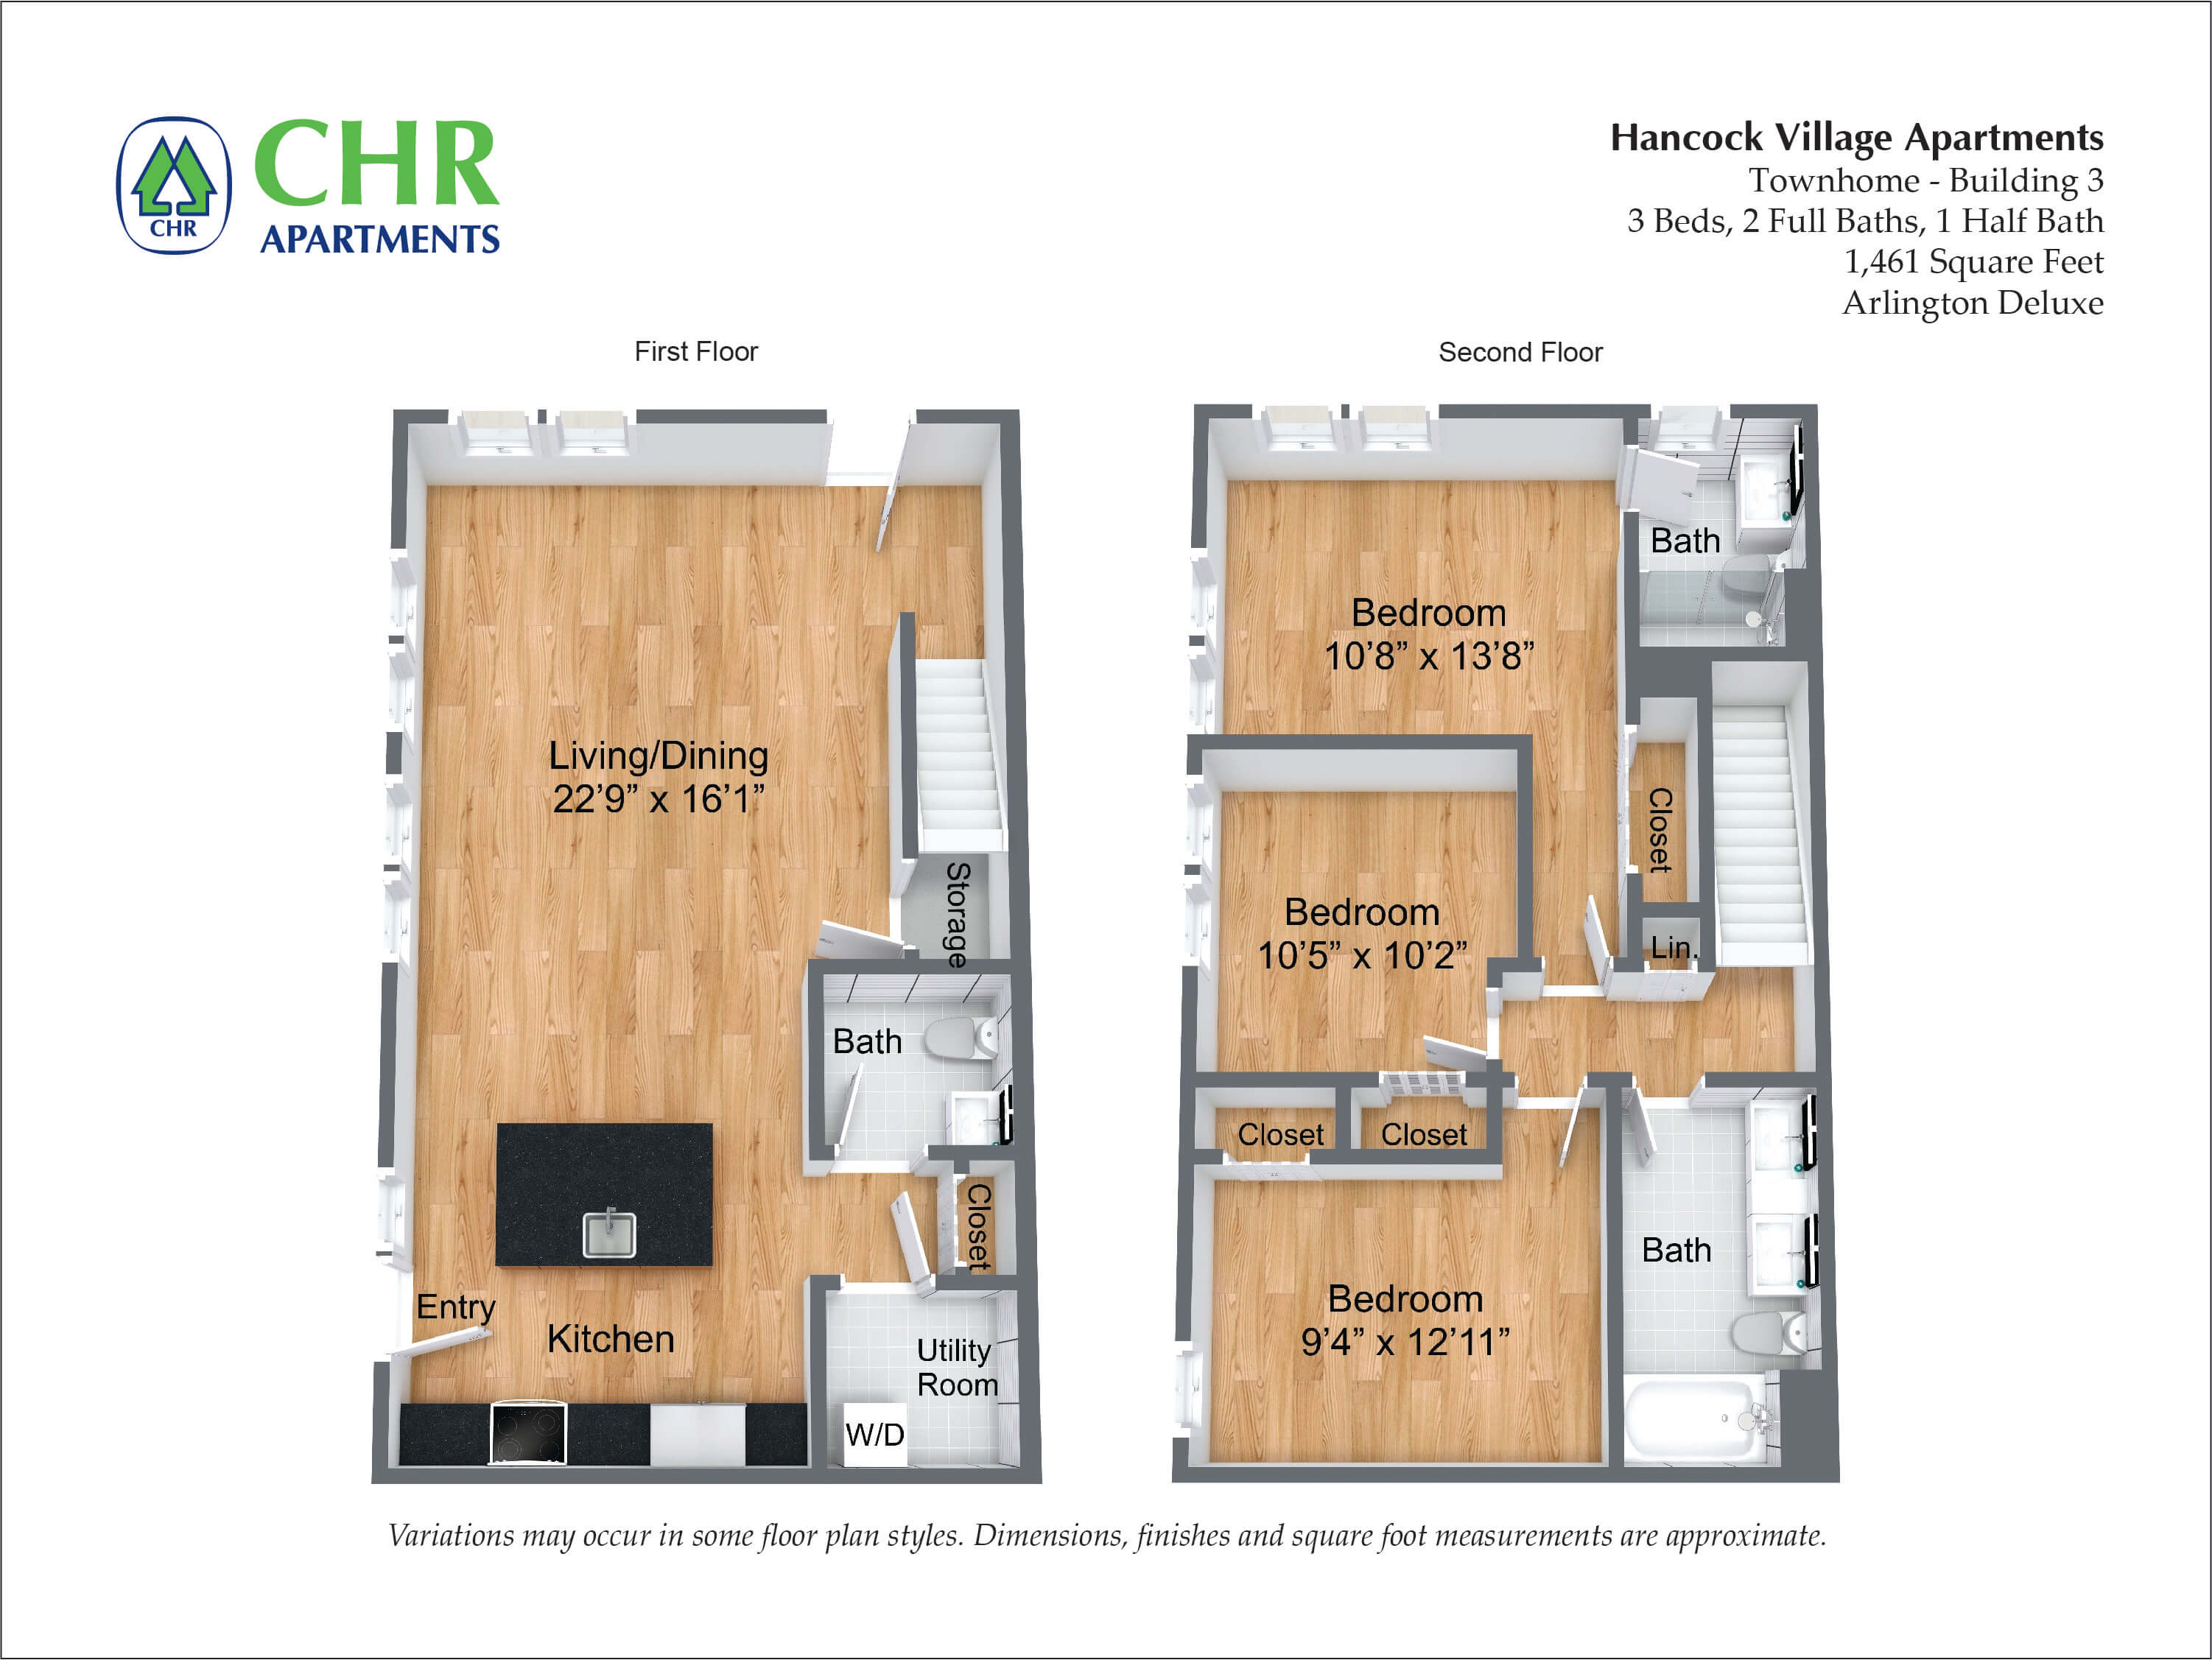 Click to view NEW Arlington Deluxe Townhome - 3 Bed/2.5 Bath floor plan gallery